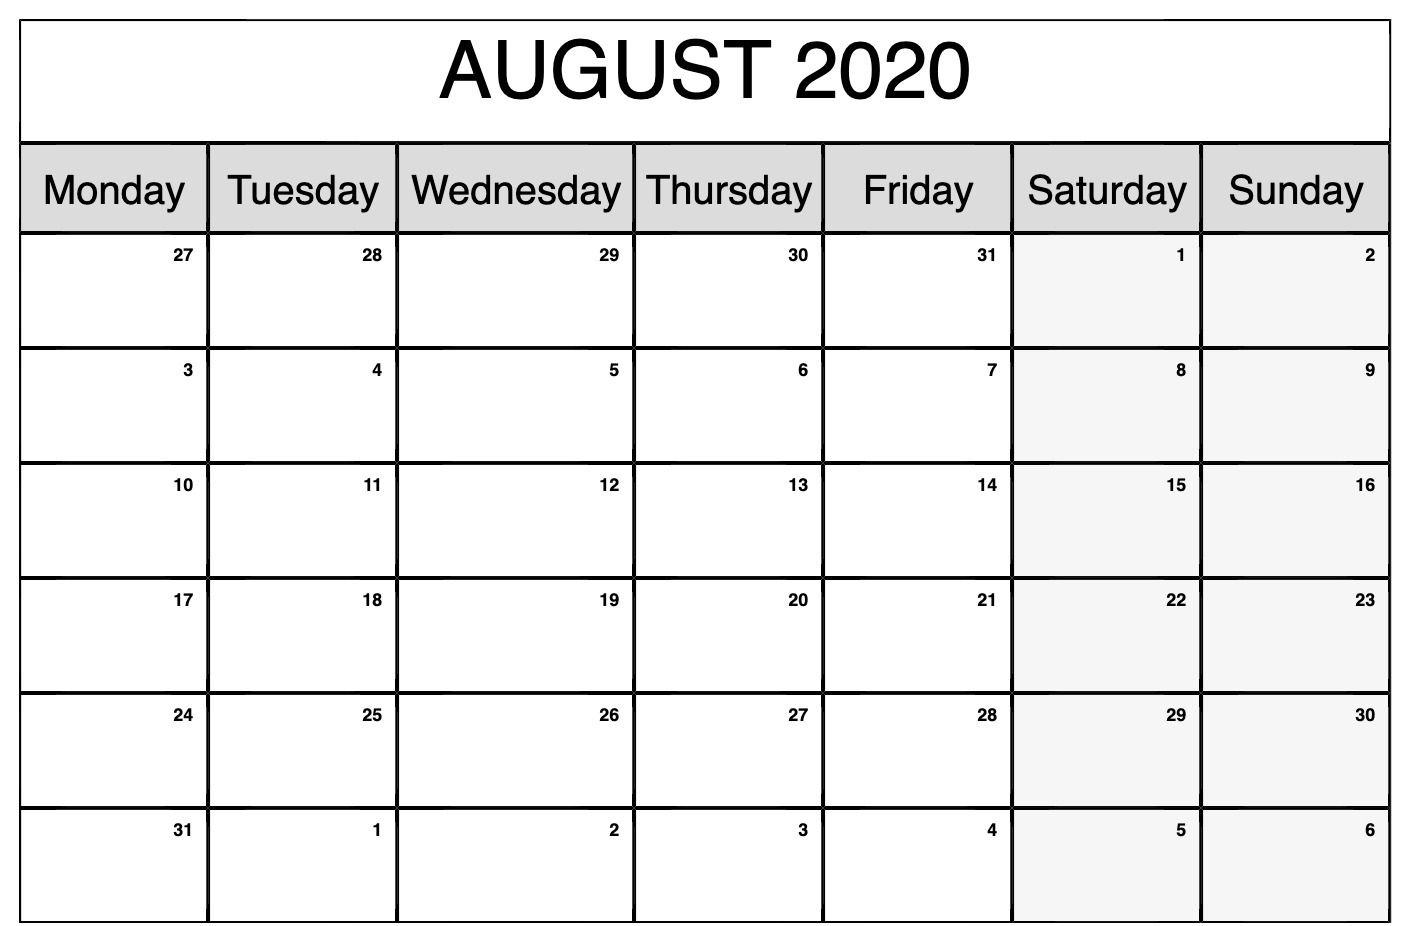 Fillable August 2020 Calendar Blank Template